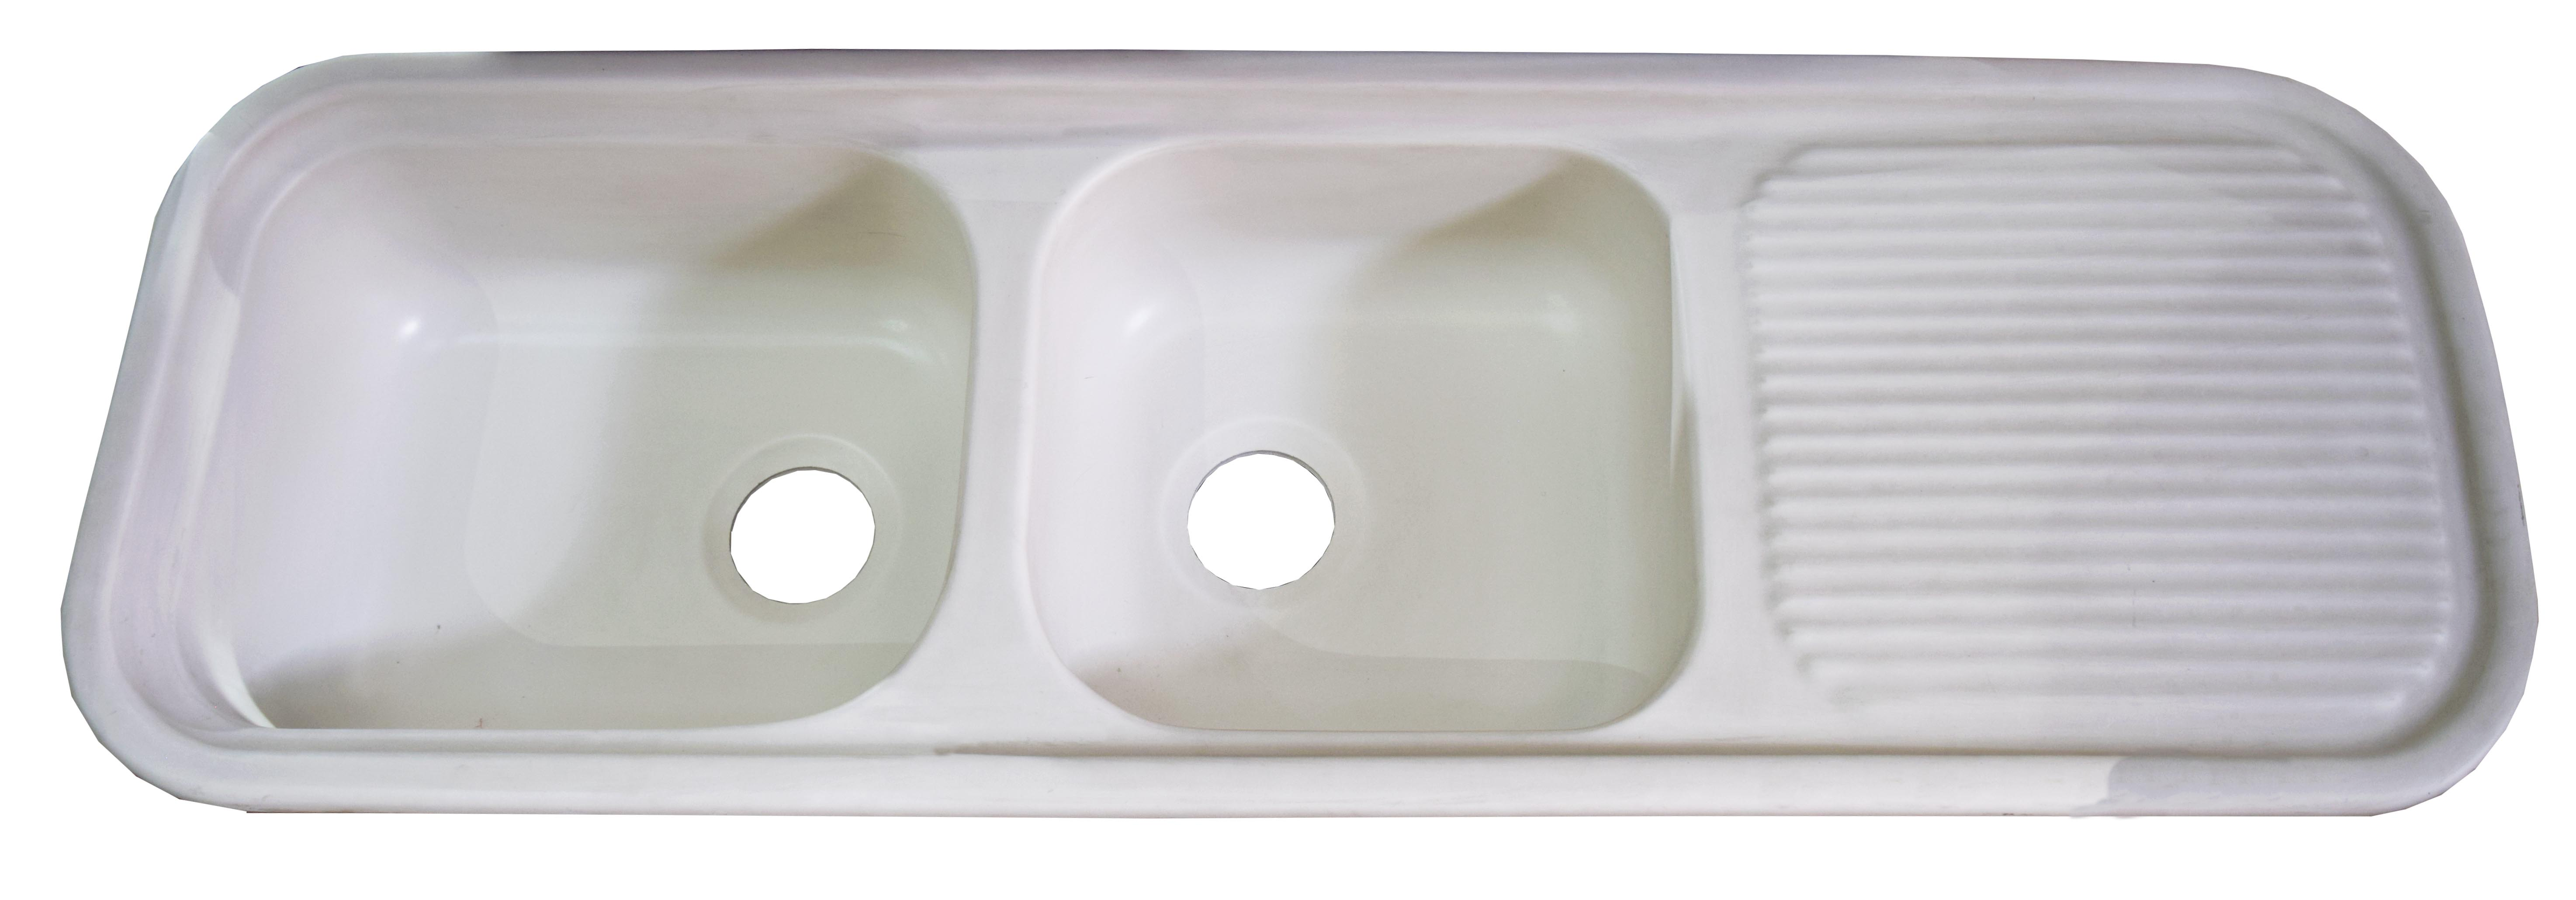 Double Bowl Plastic Kitchen Sink with Drainboard - The Roopnarine ...